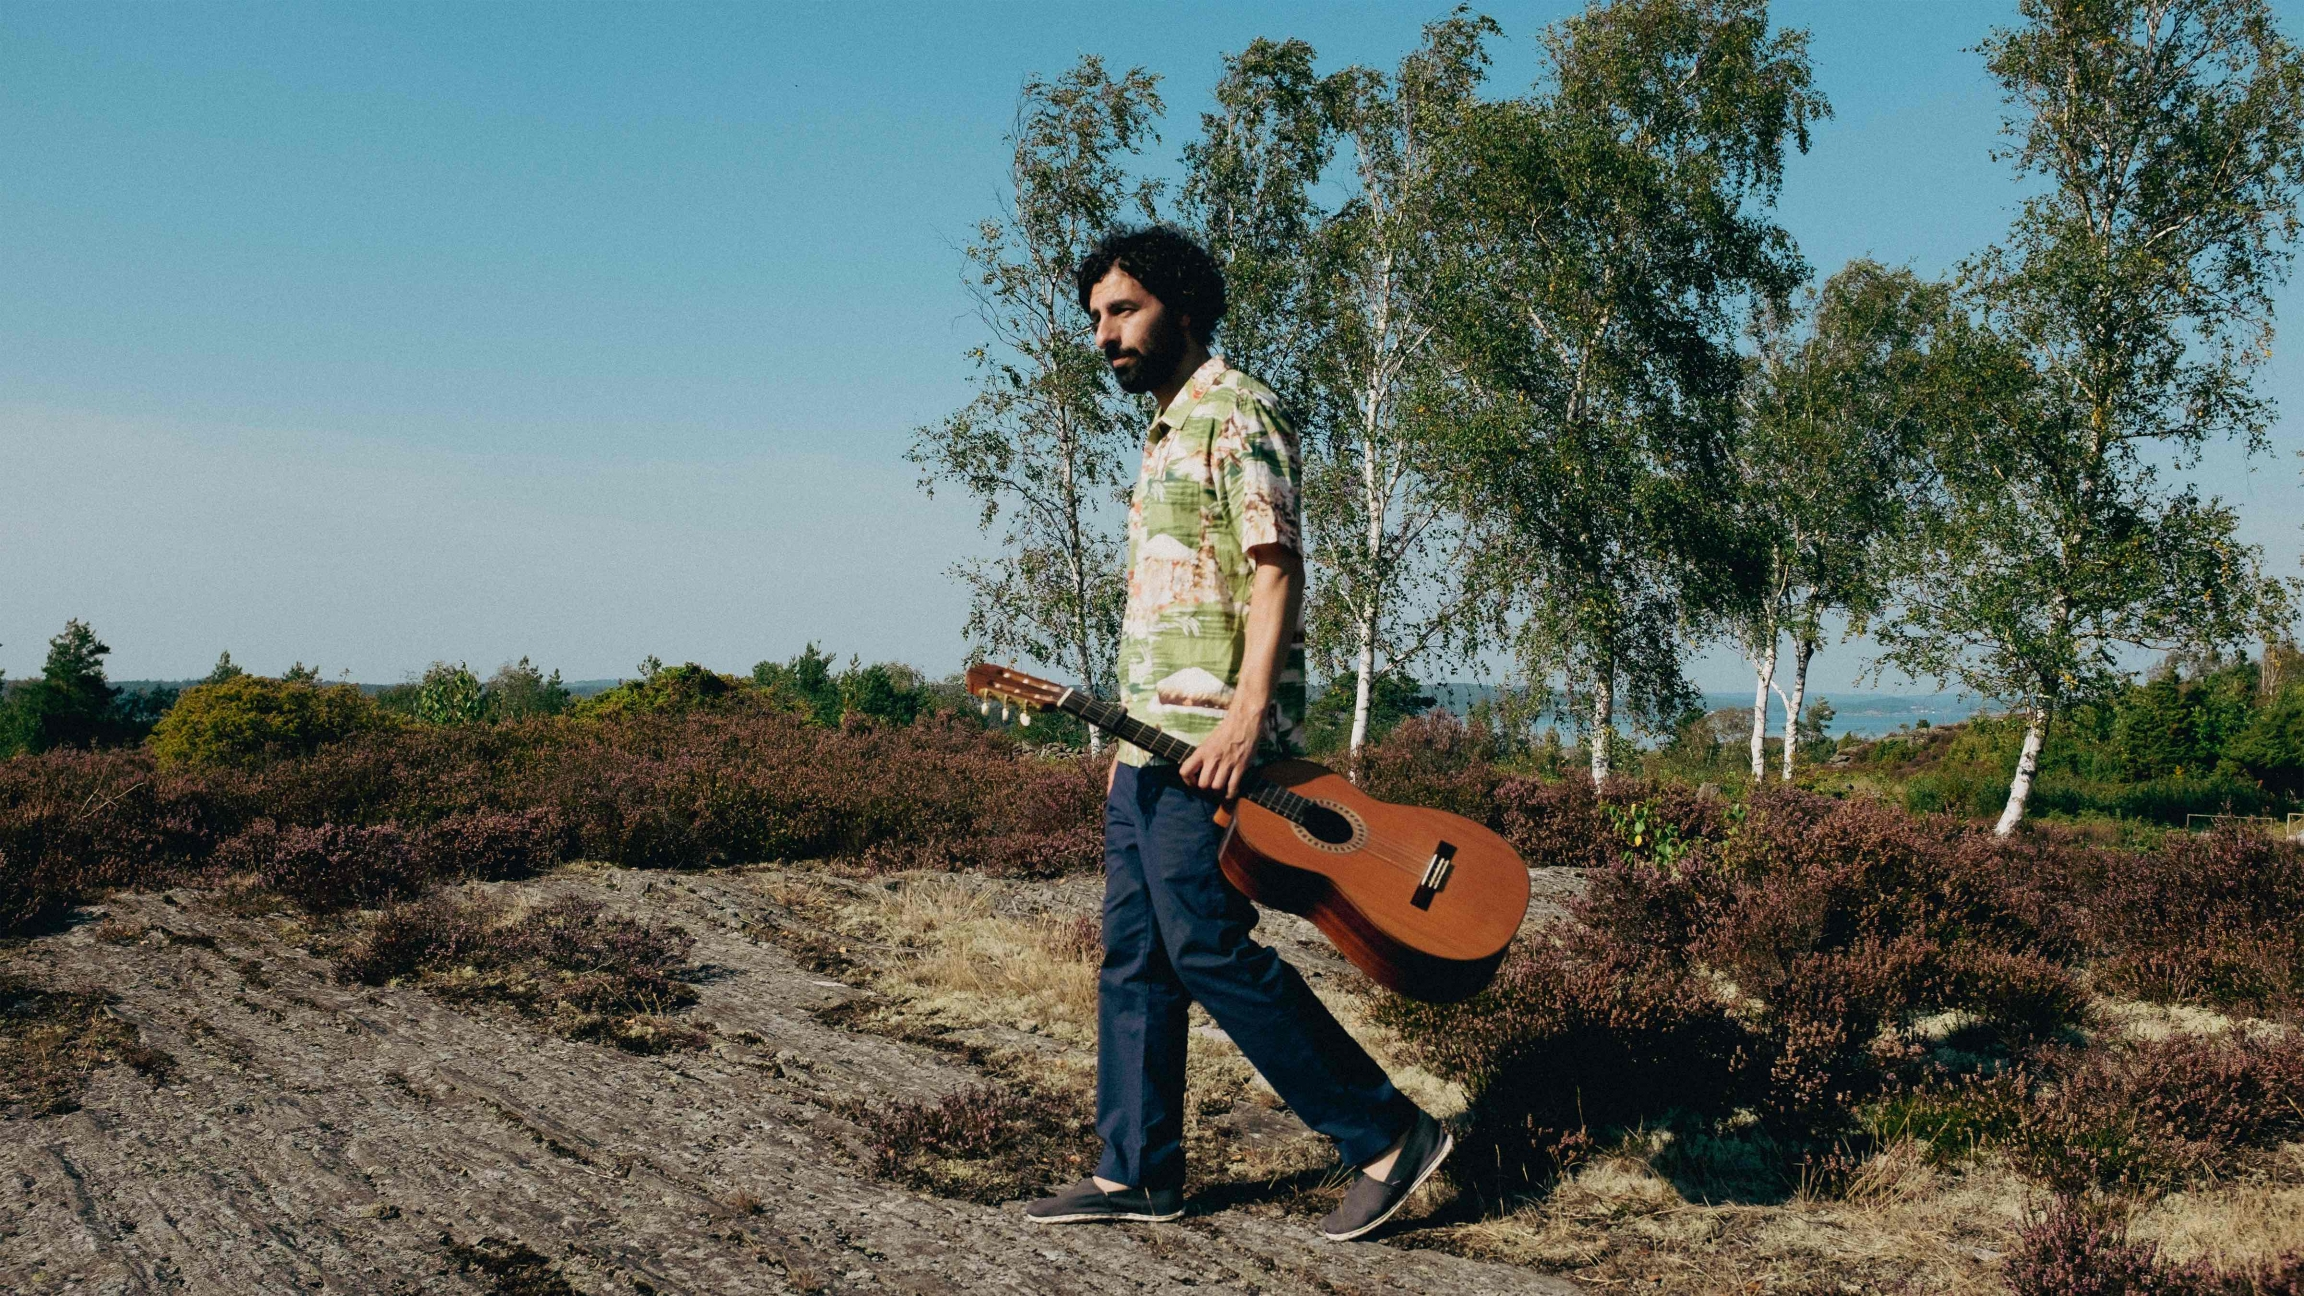 Swedish musician José González is known for stretching musical boundaries over his 18-year career.